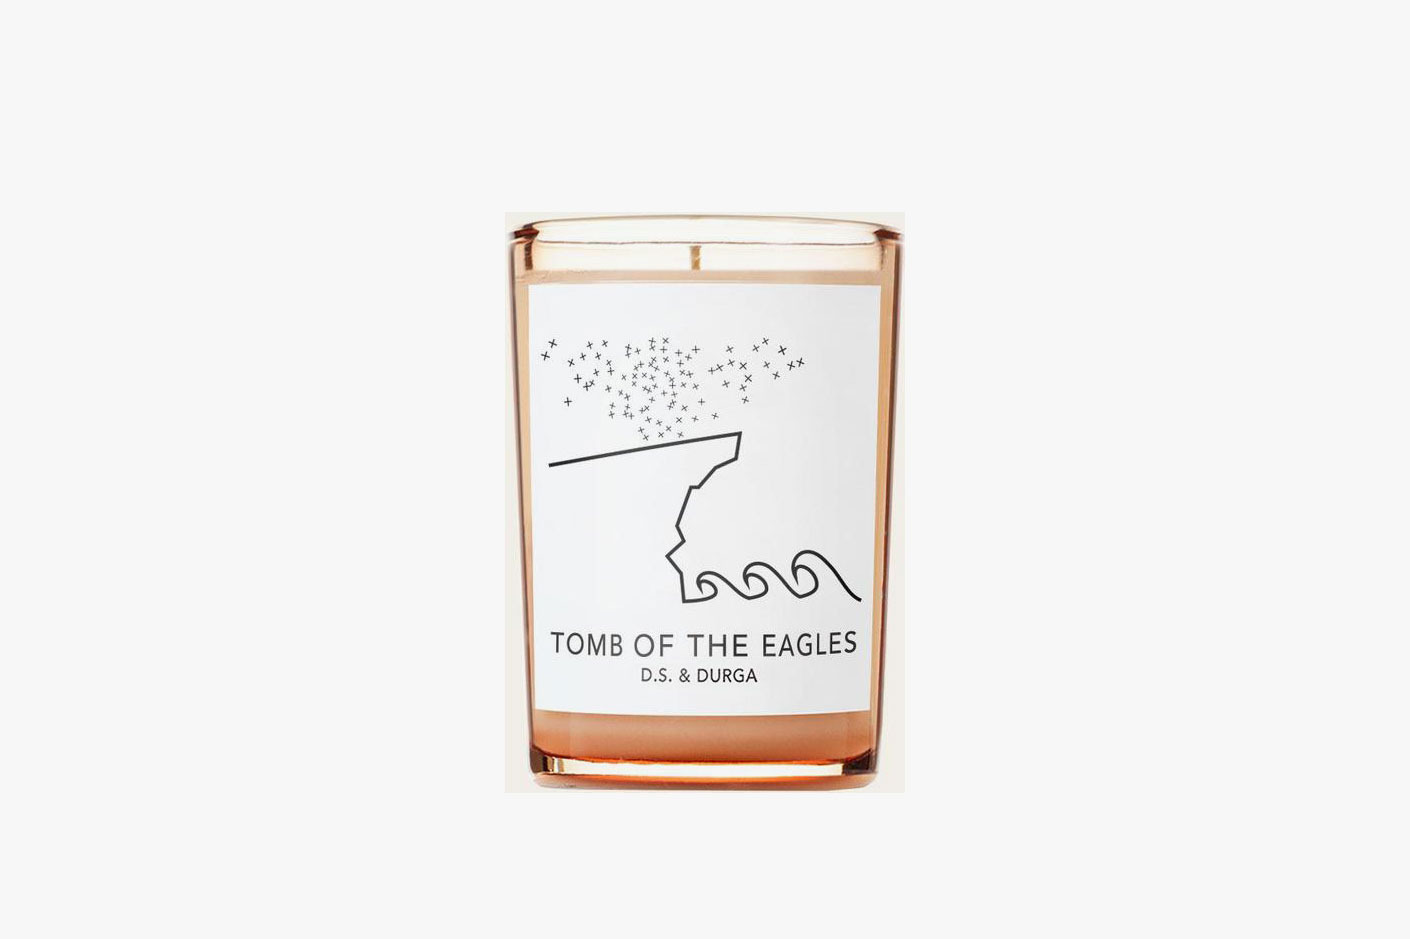 D.S. & Durga Tomb Of The Eagles Scented Candle